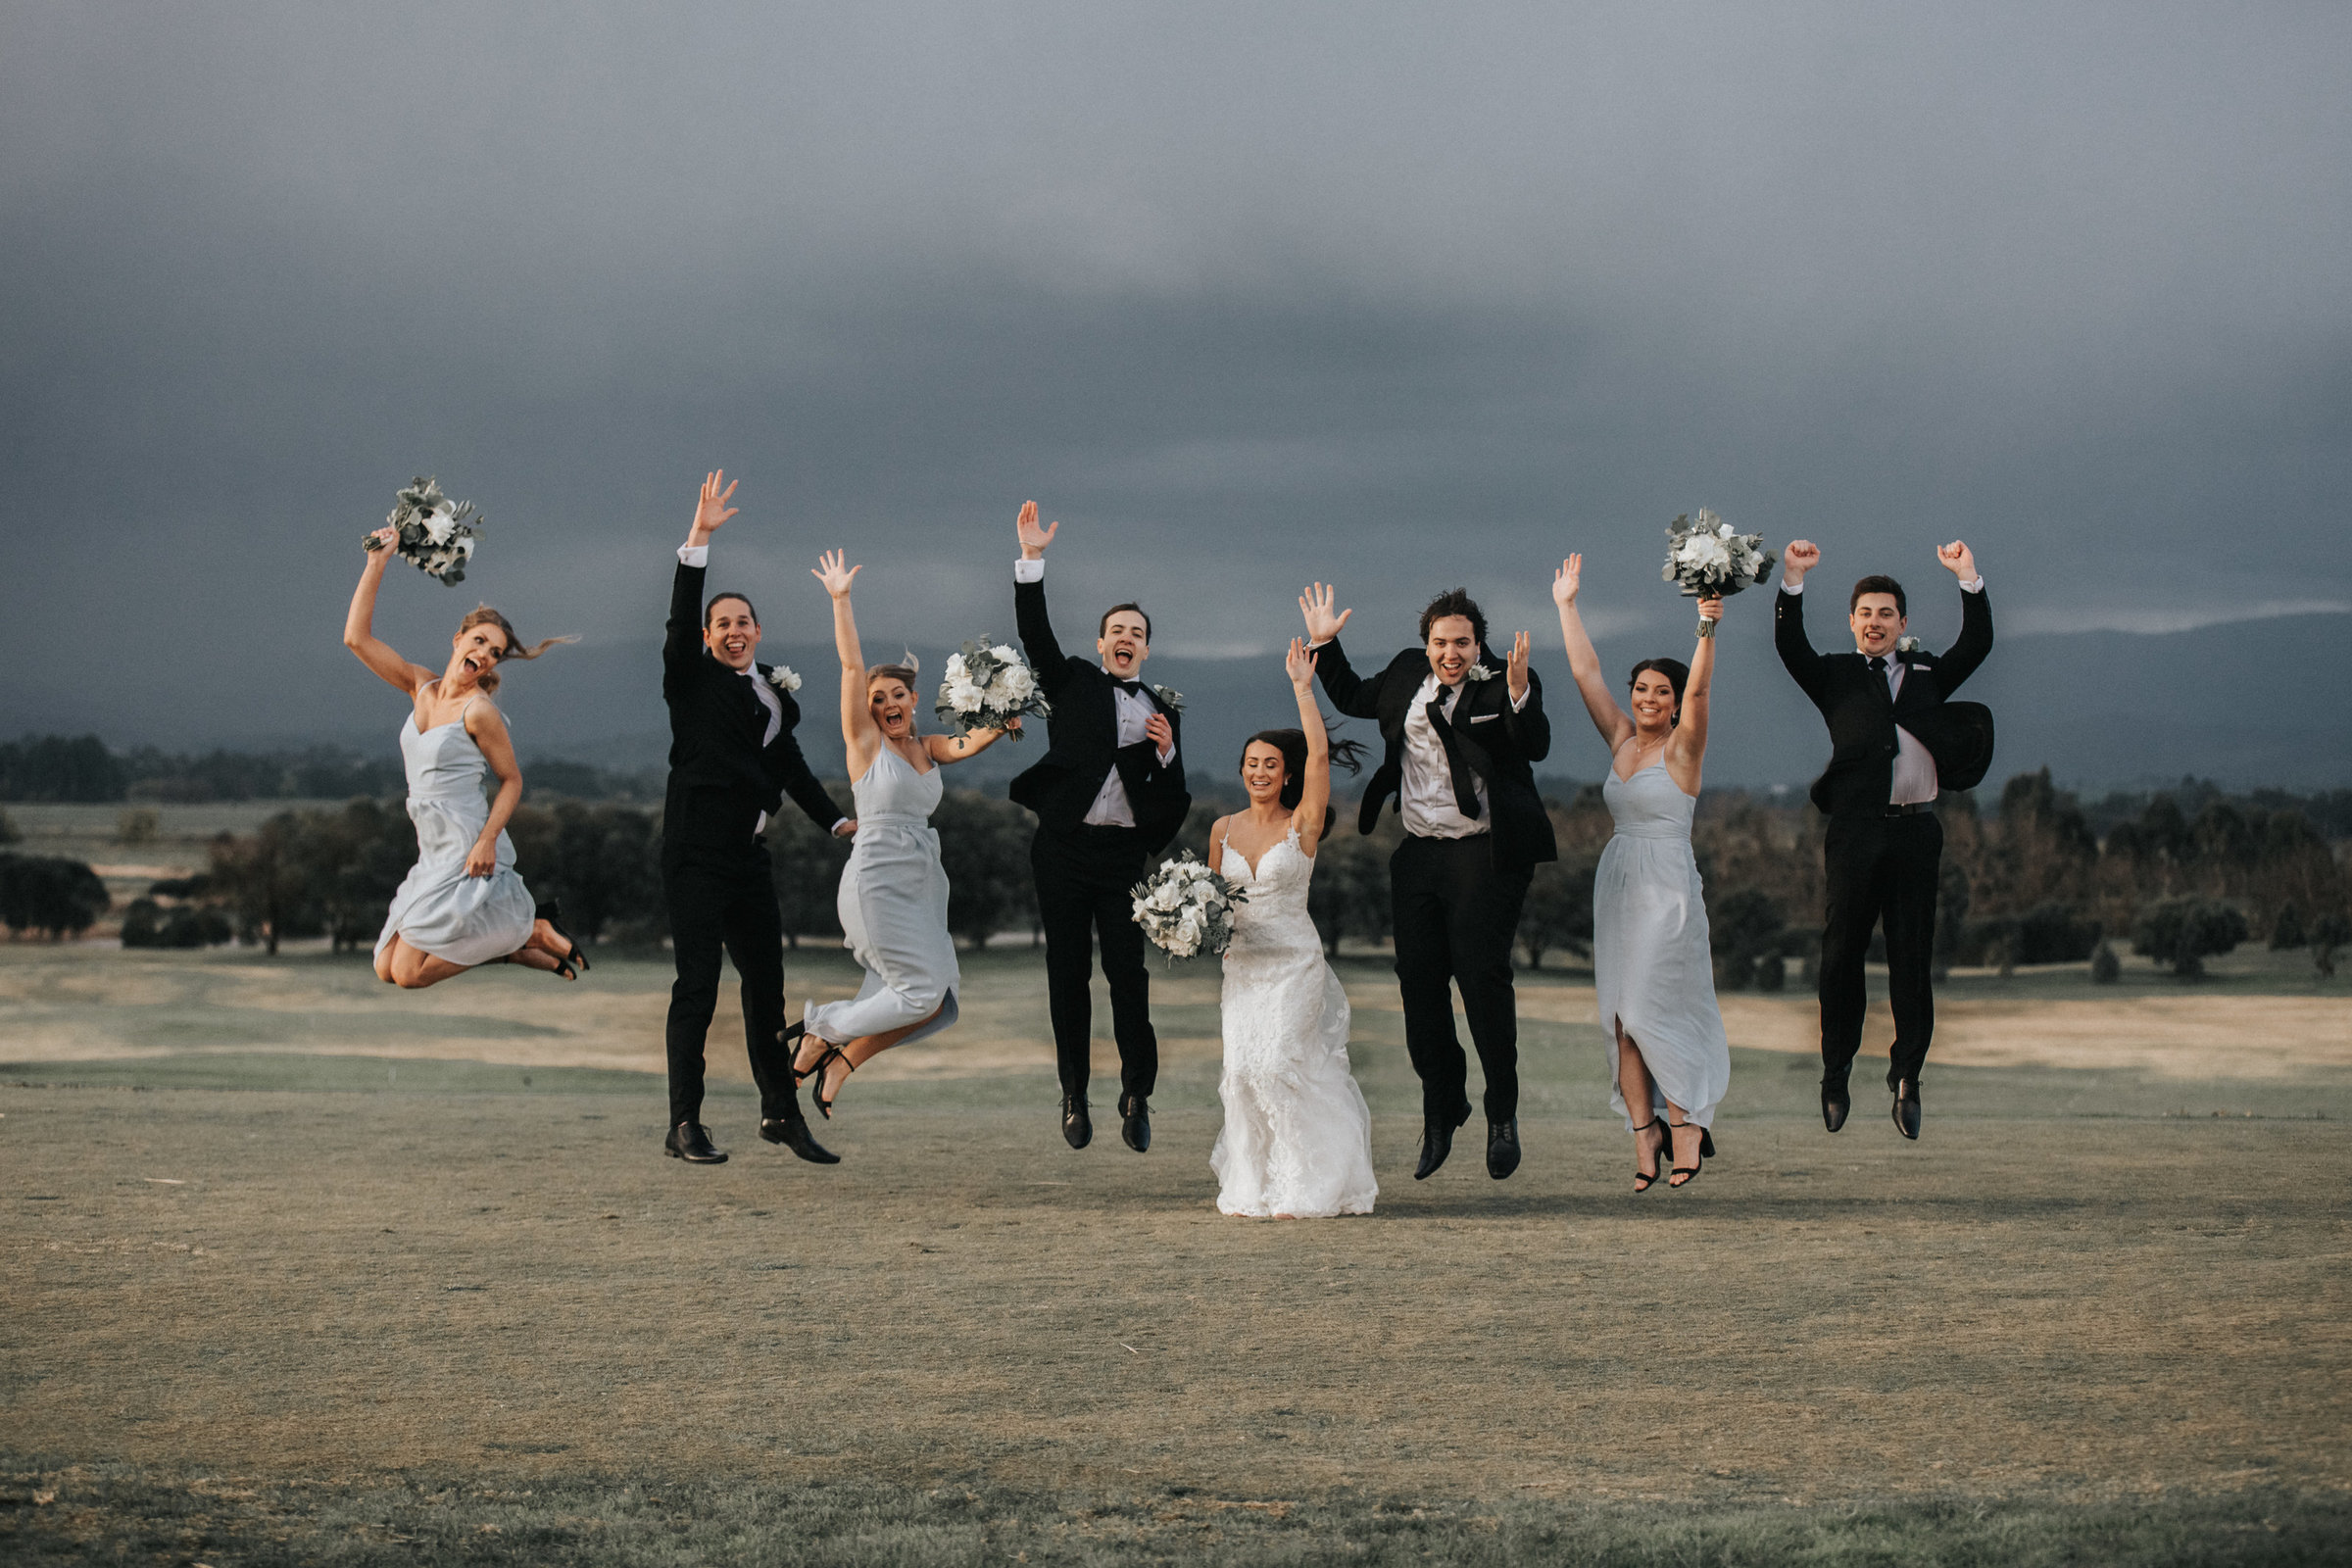 Bridal Party Jumping Photograph at Yering Meadows Golf Course in Melbourne